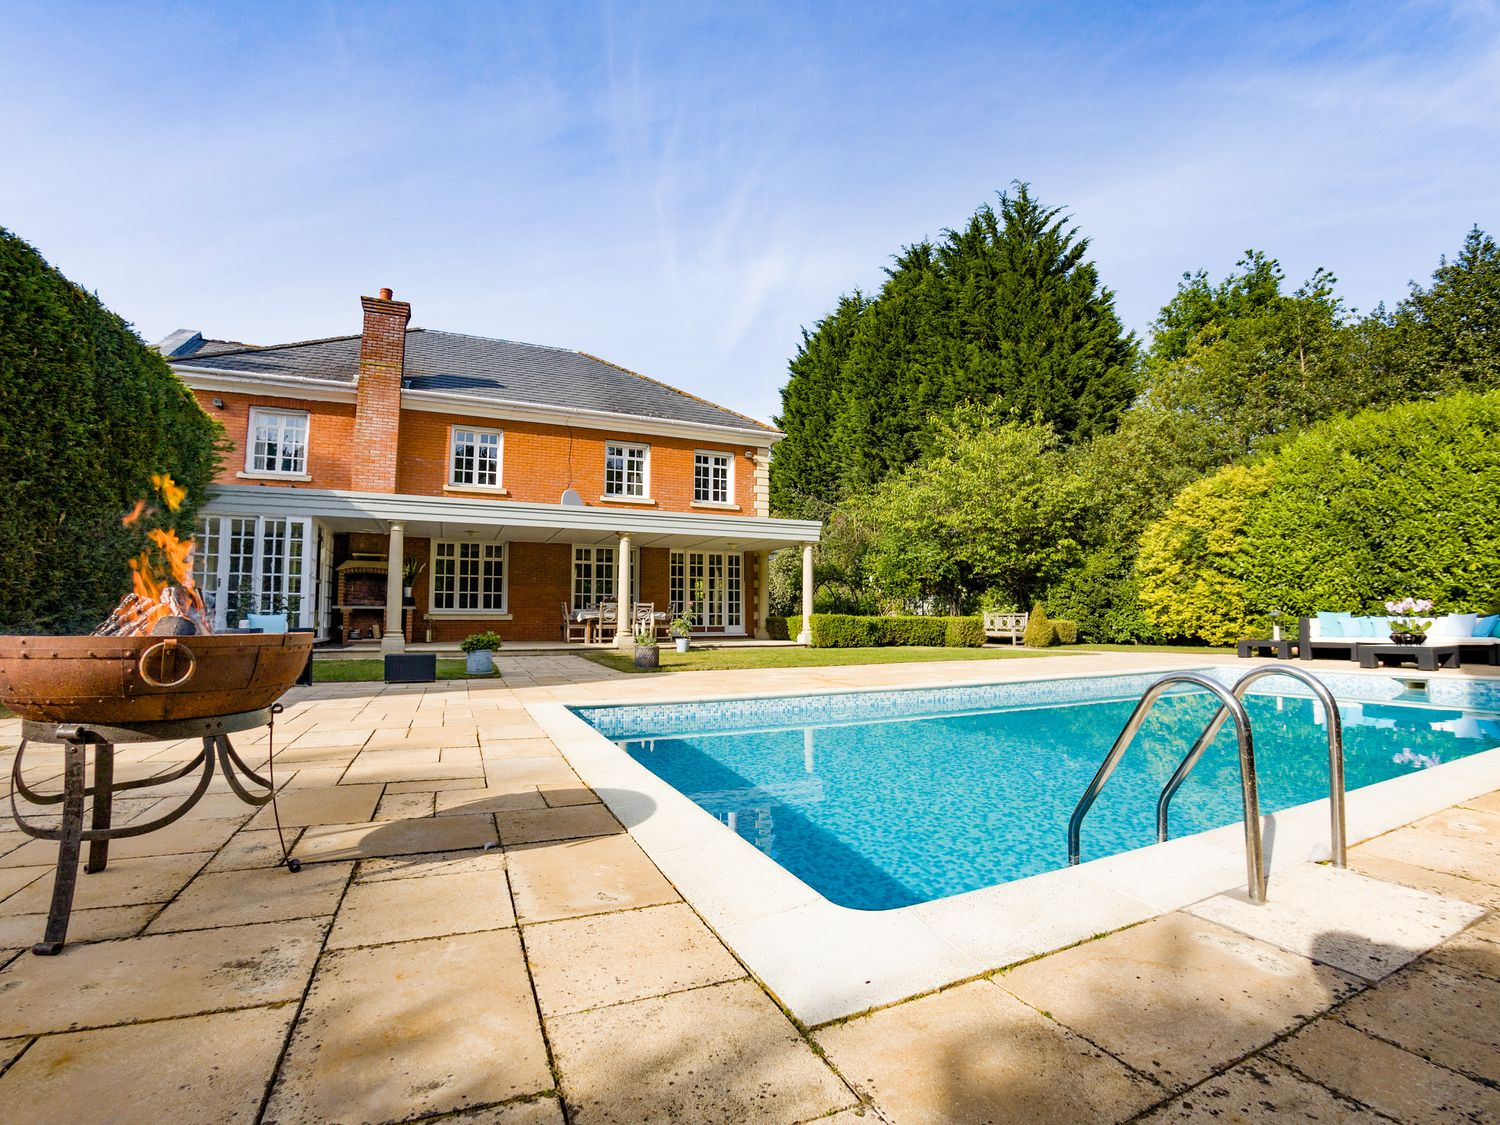 5 of the best UK holiday homes with private outdoor heated pools